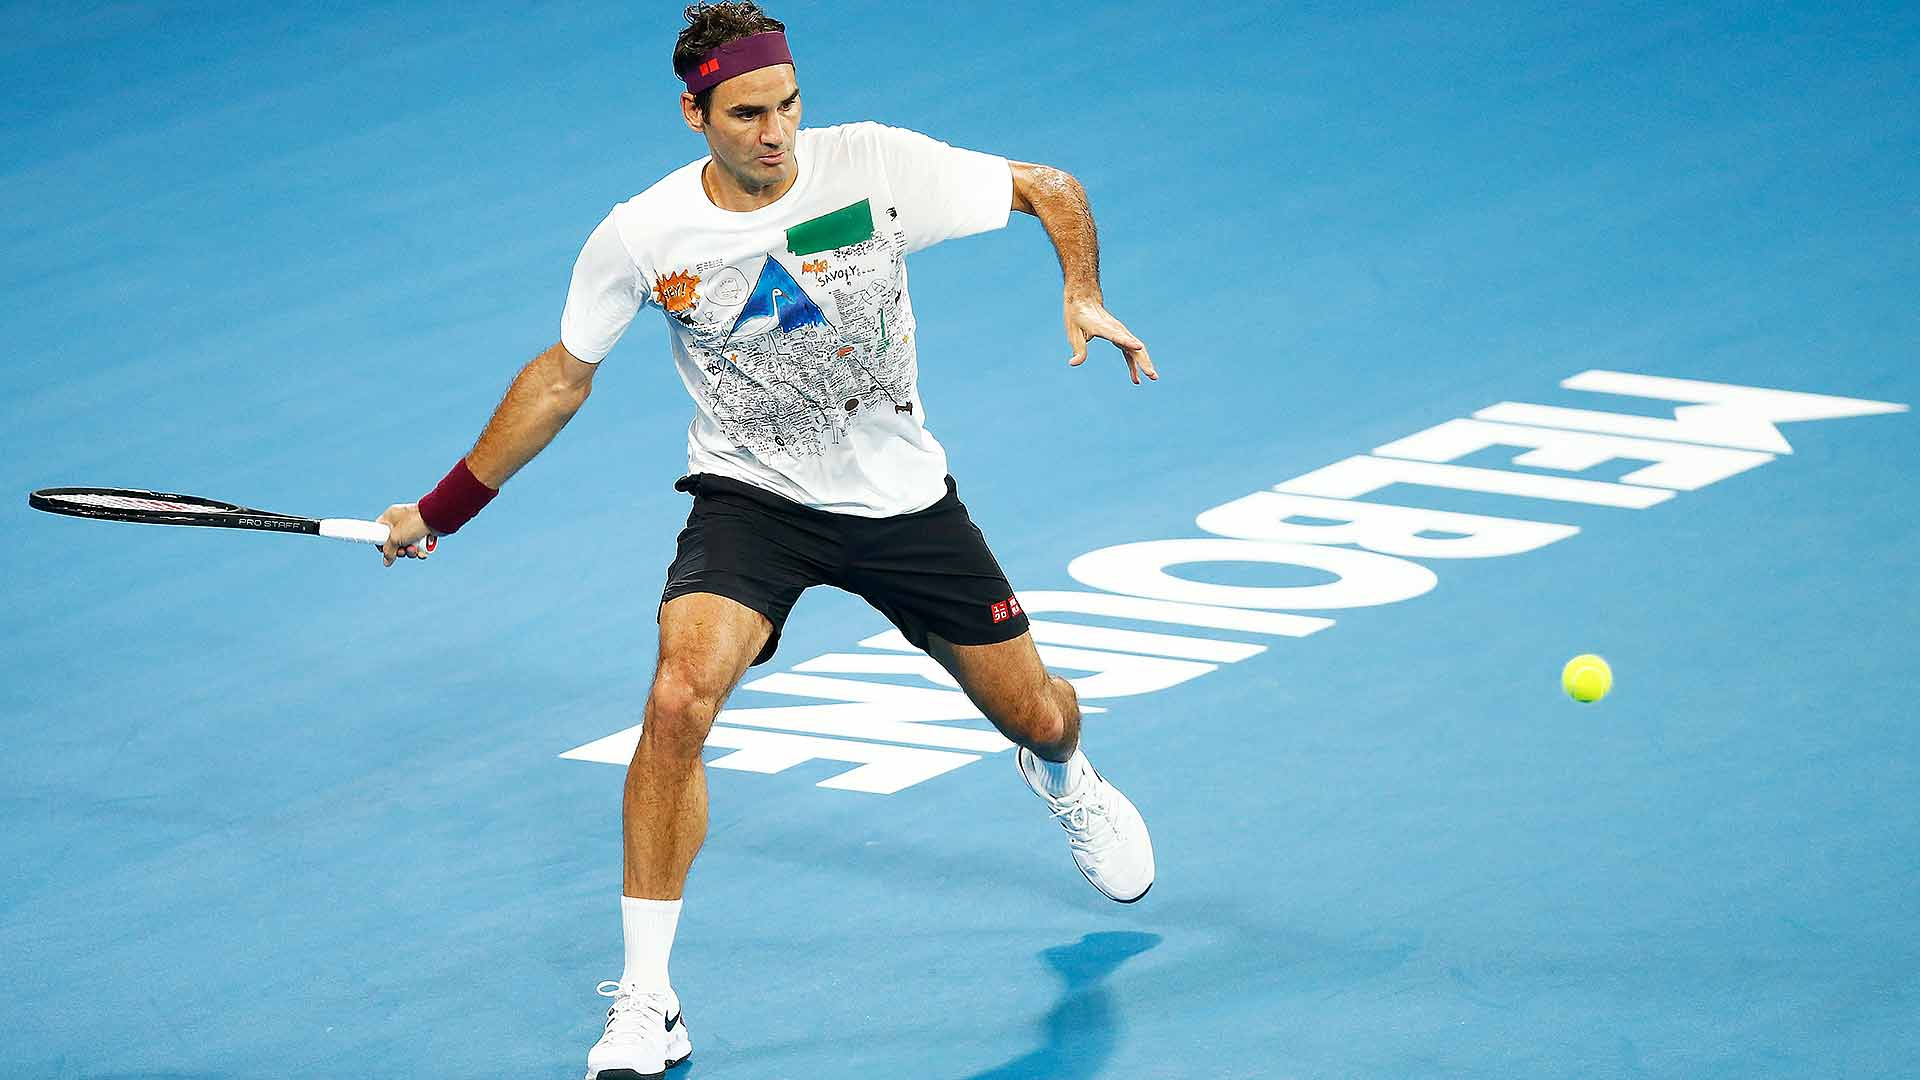 Roger Federer is going for his seventh Australian Open title this fortnight.